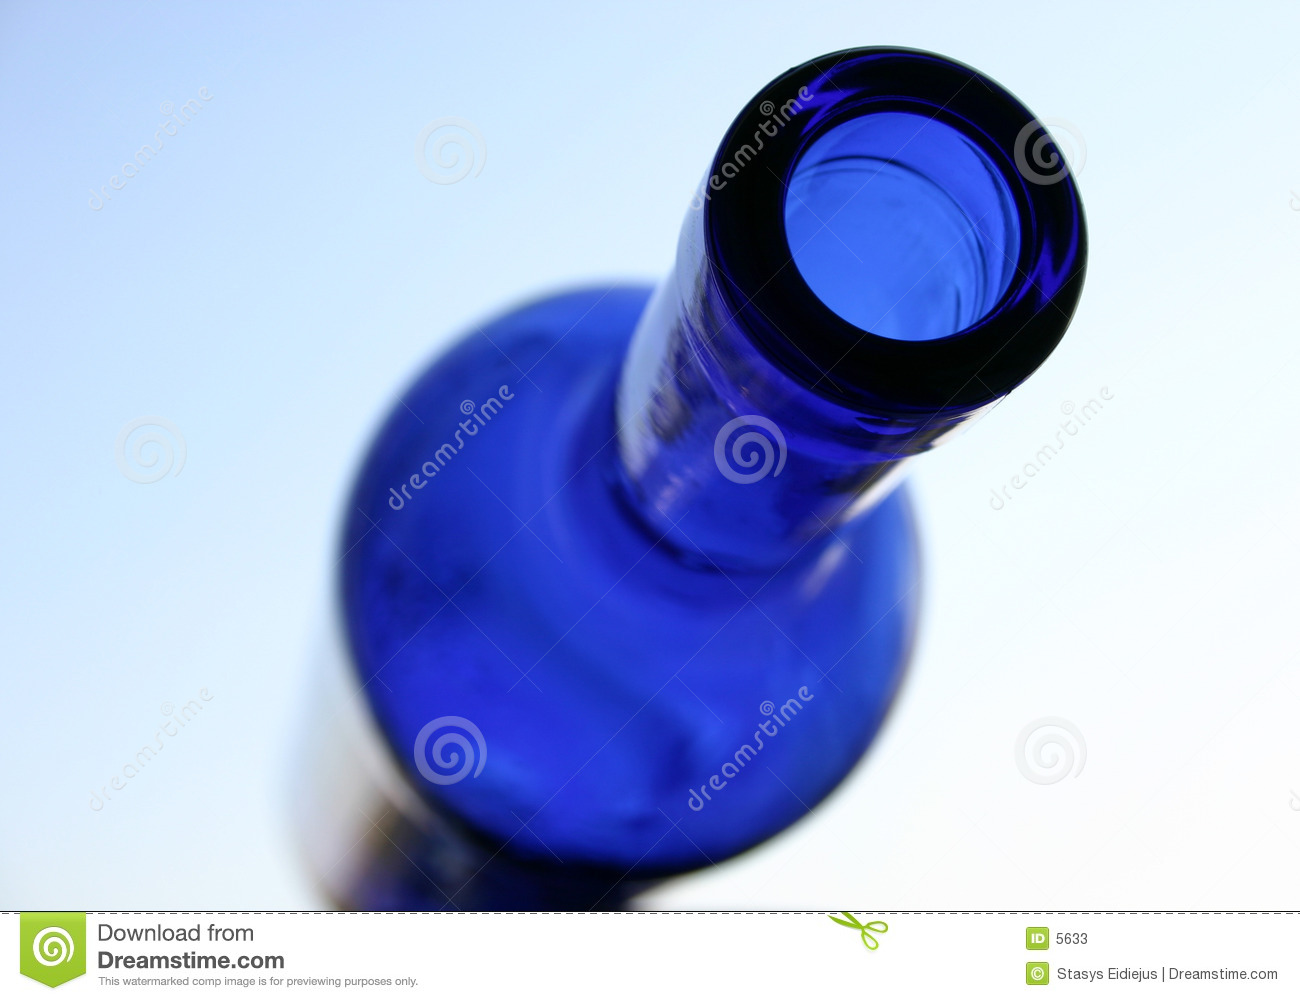 Bouteille bleue II